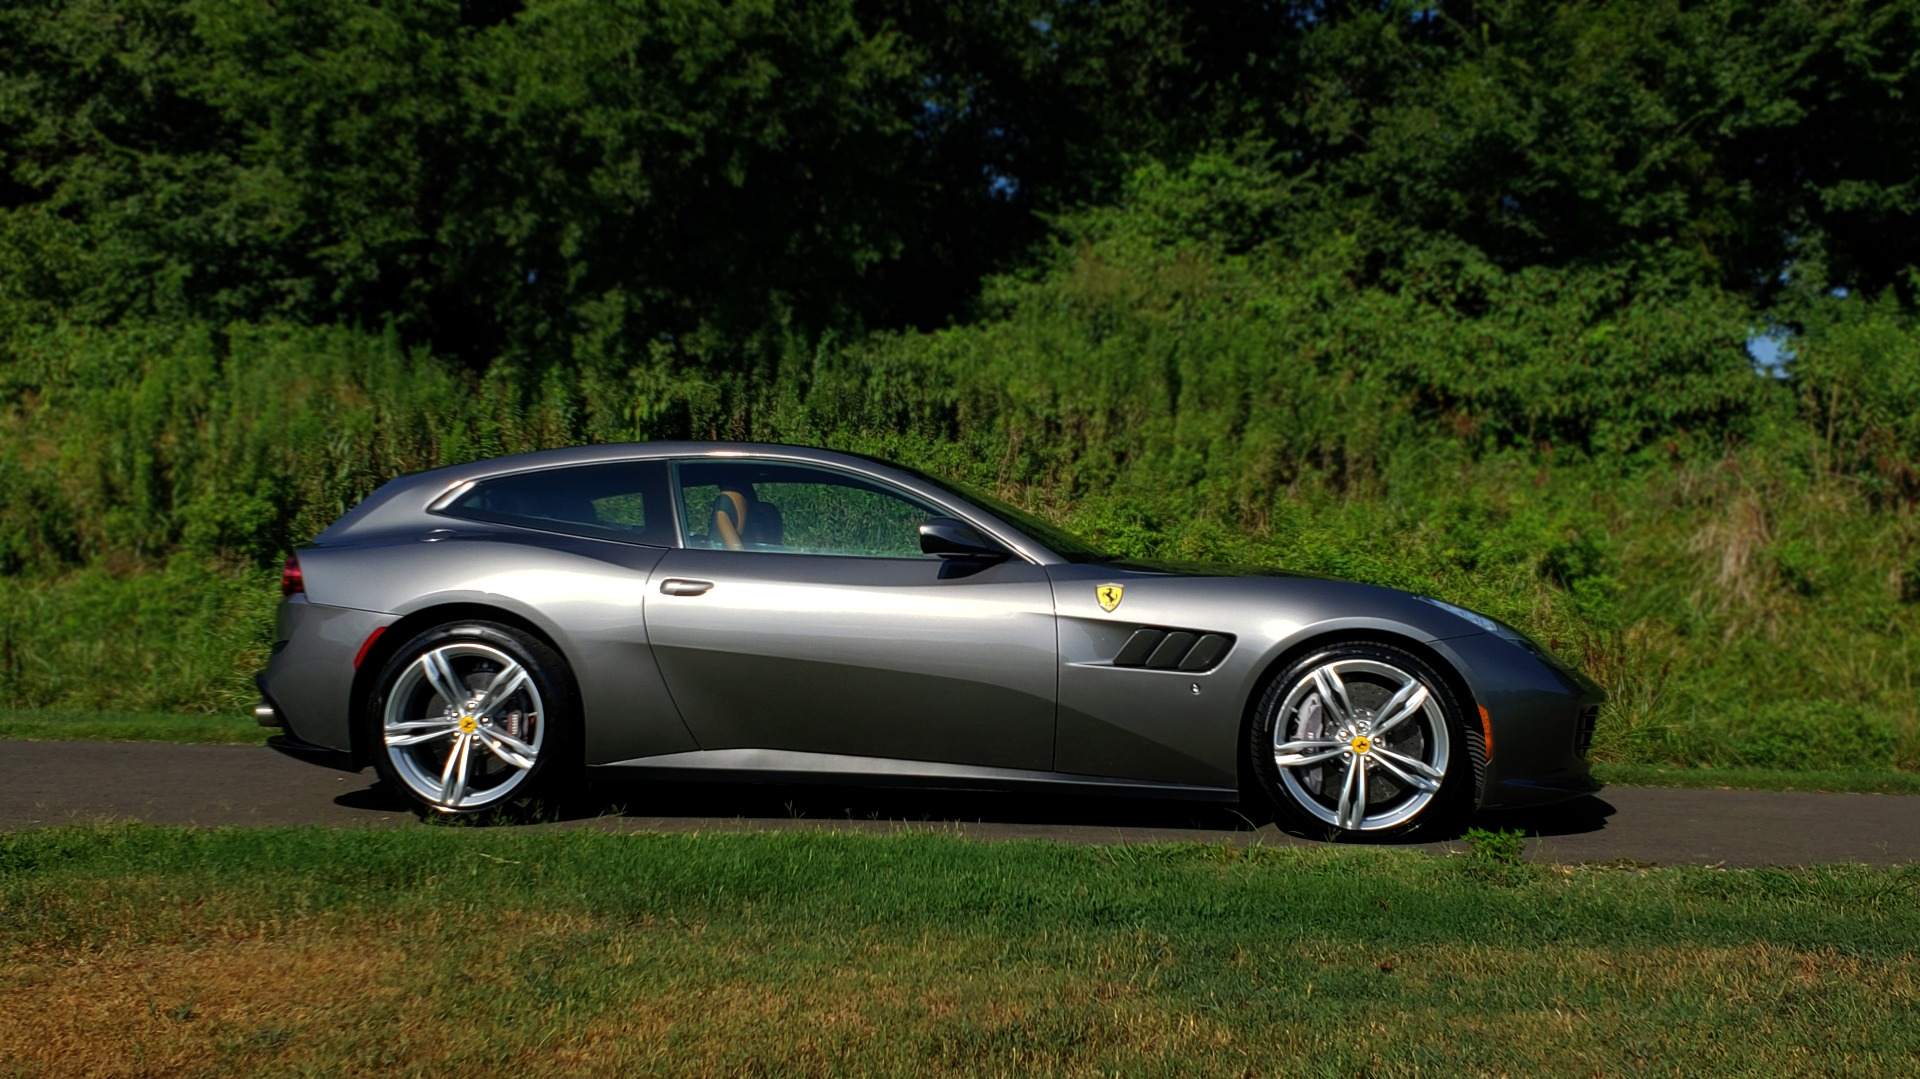 Used 2017 Ferrari GTC4 LUSSO AWD / PANO-ROOF / APPLE CAR PLAY / SUSP LIFT / JBL SOUND for sale $188,999 at Formula Imports in Charlotte NC 28227 9